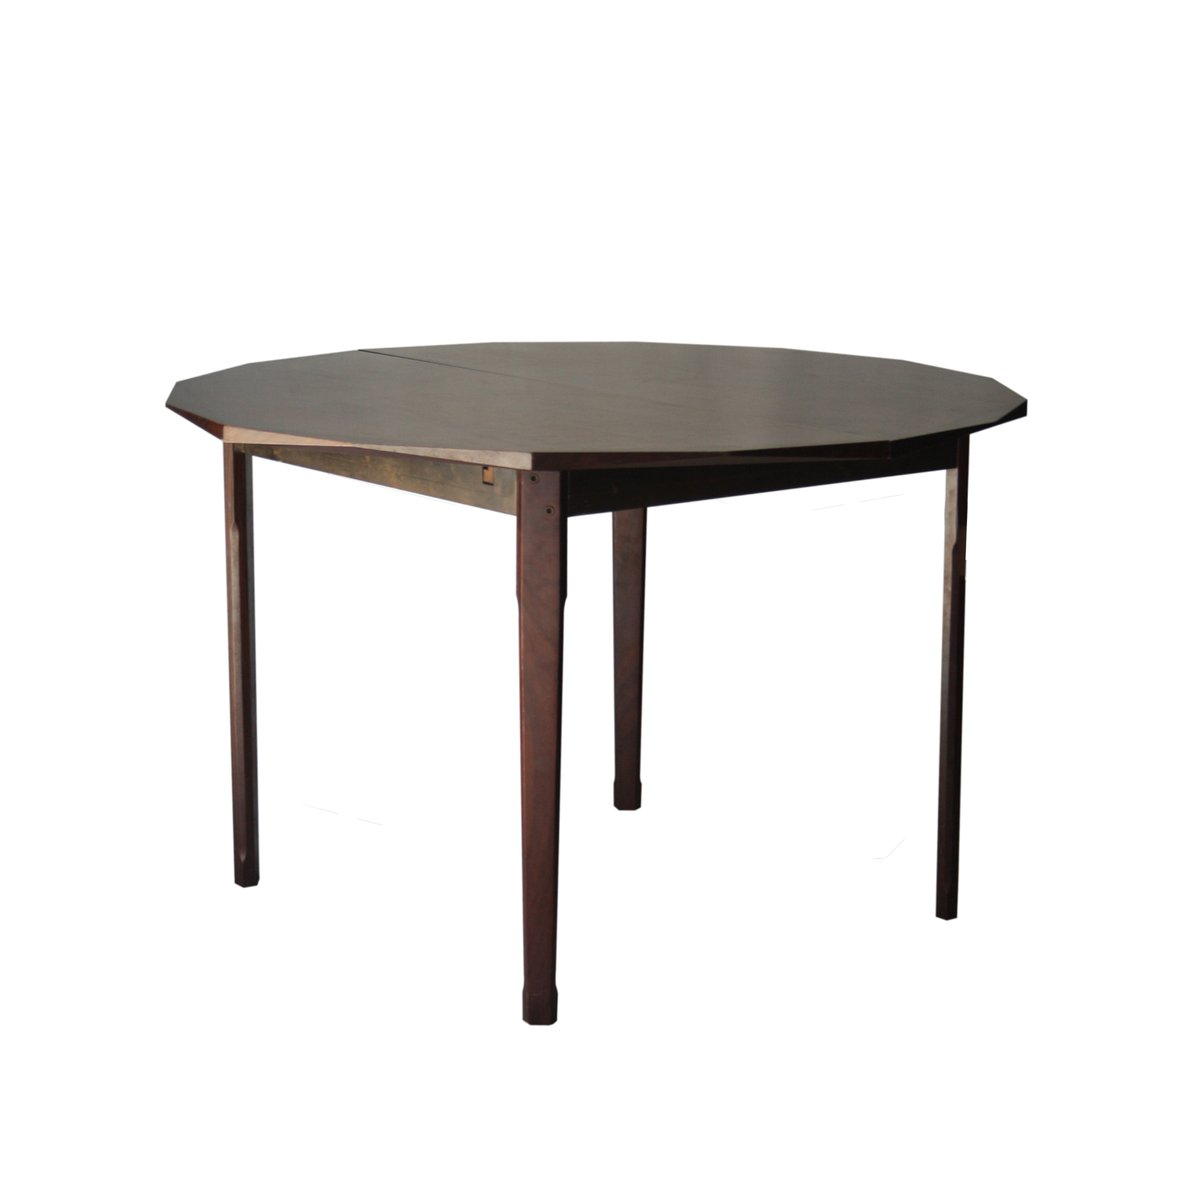 Extensible geometric dining table 1950s for sale at pamono for Table extensible